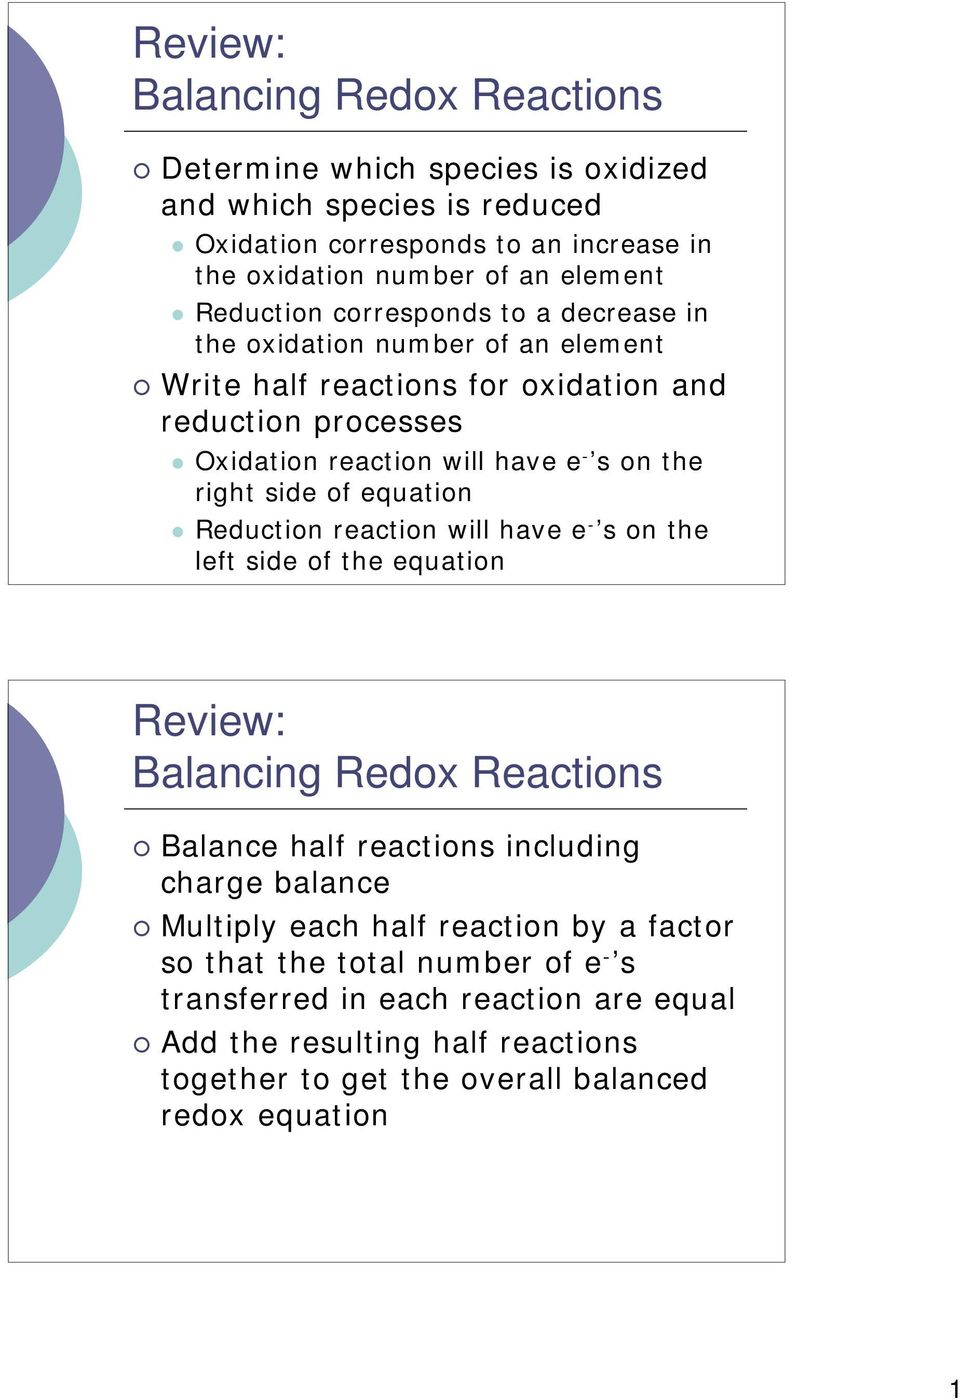 side of equation Reduction reaction will have e - s on the left side of the equation Review: Balancing Redox Reactions Balance half reactions including charge balance Multiply each